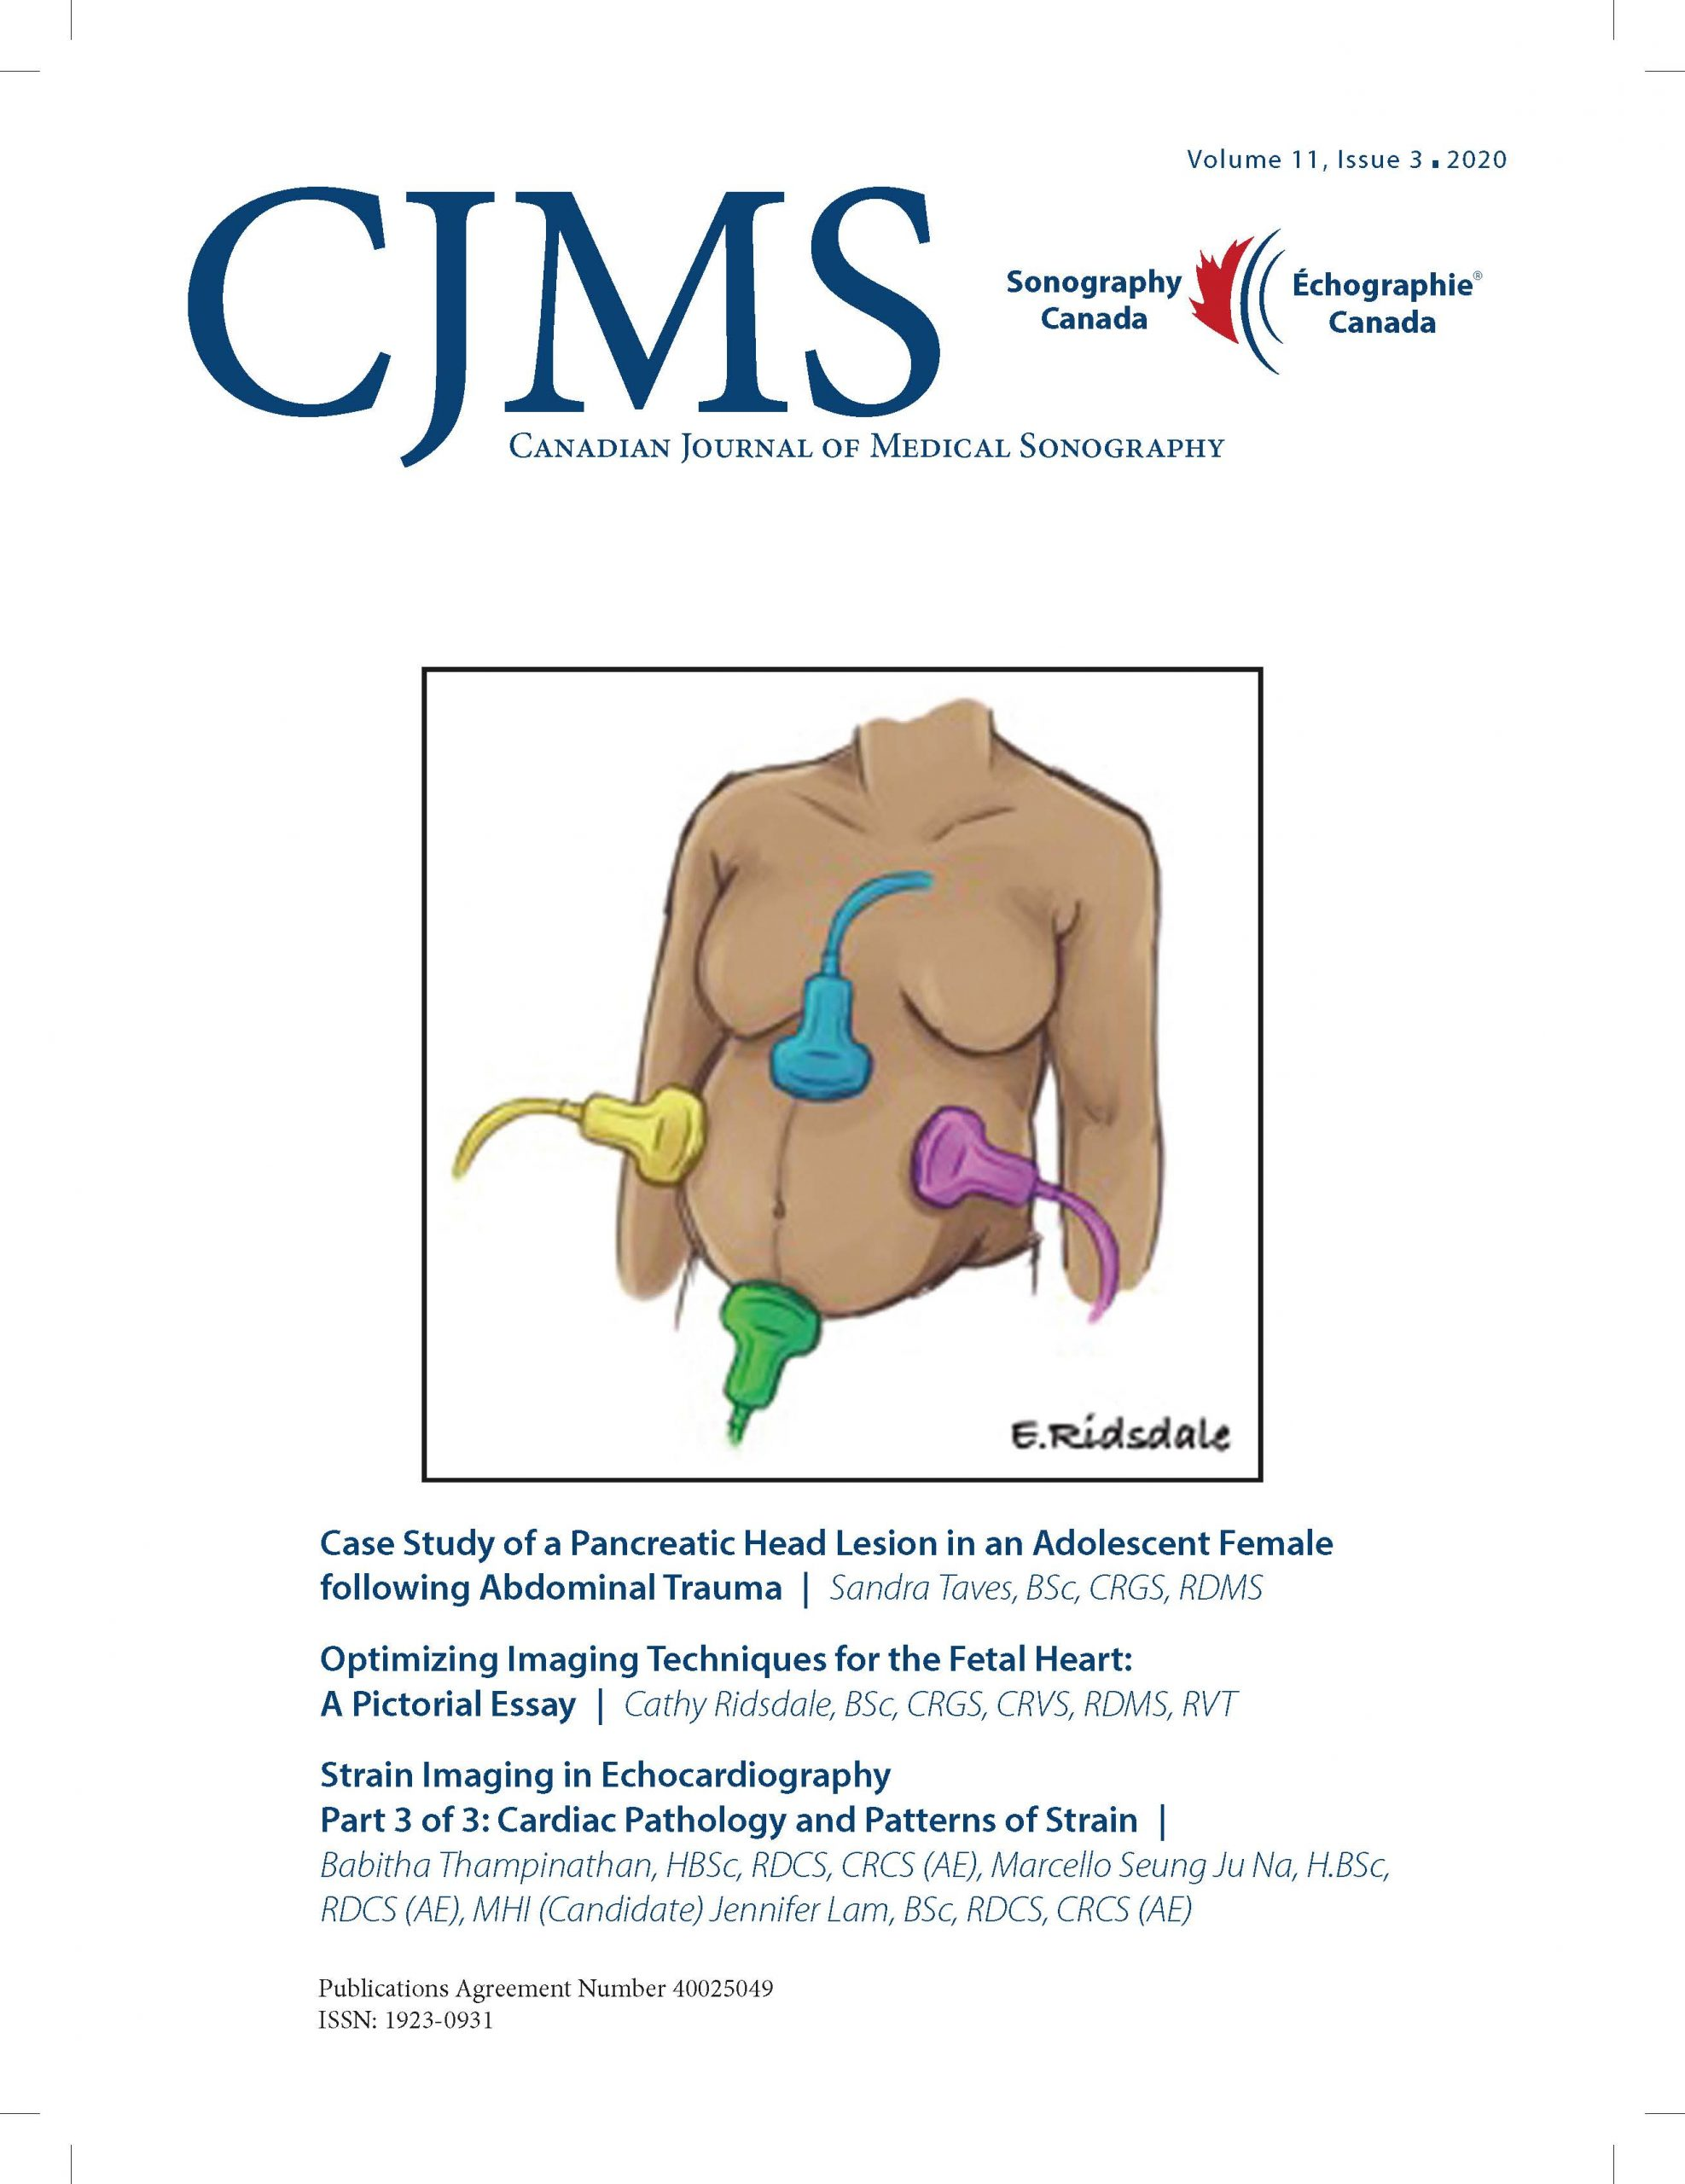 CJMS Volume 11, Issue 3 front page